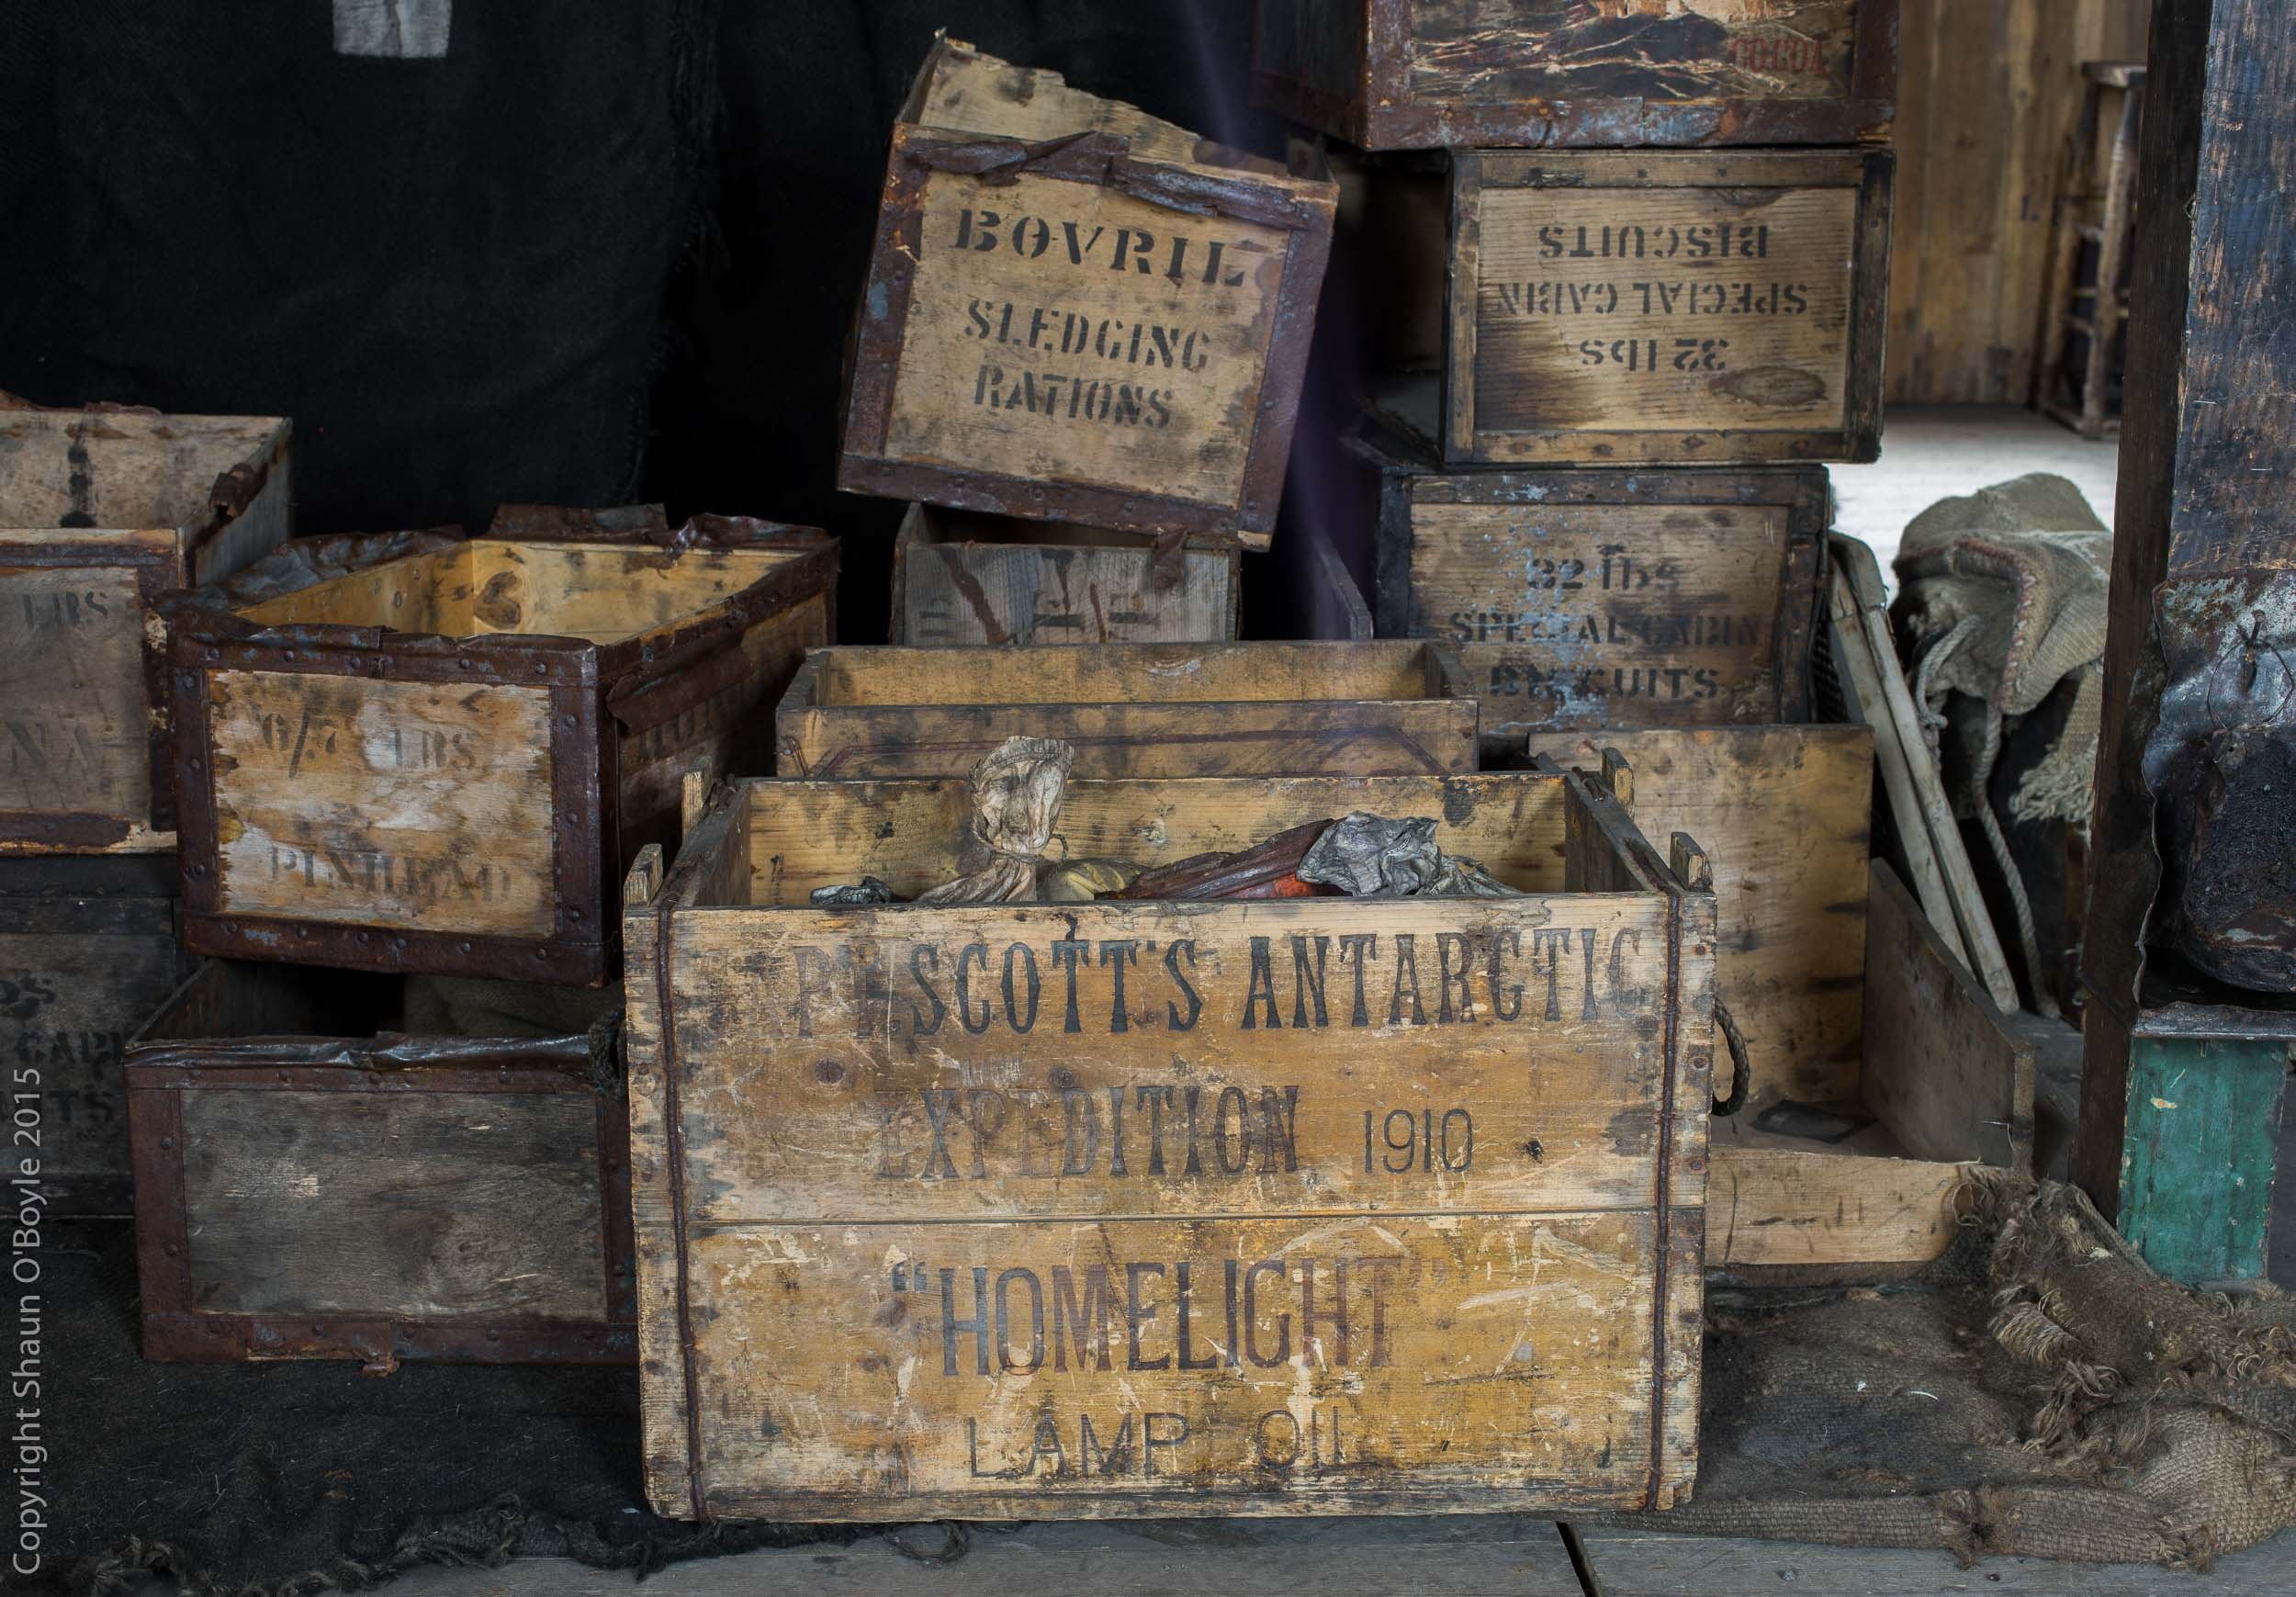 Supply cases brought to Discovery Hut from the Terra Nova hut at Cape Evans.